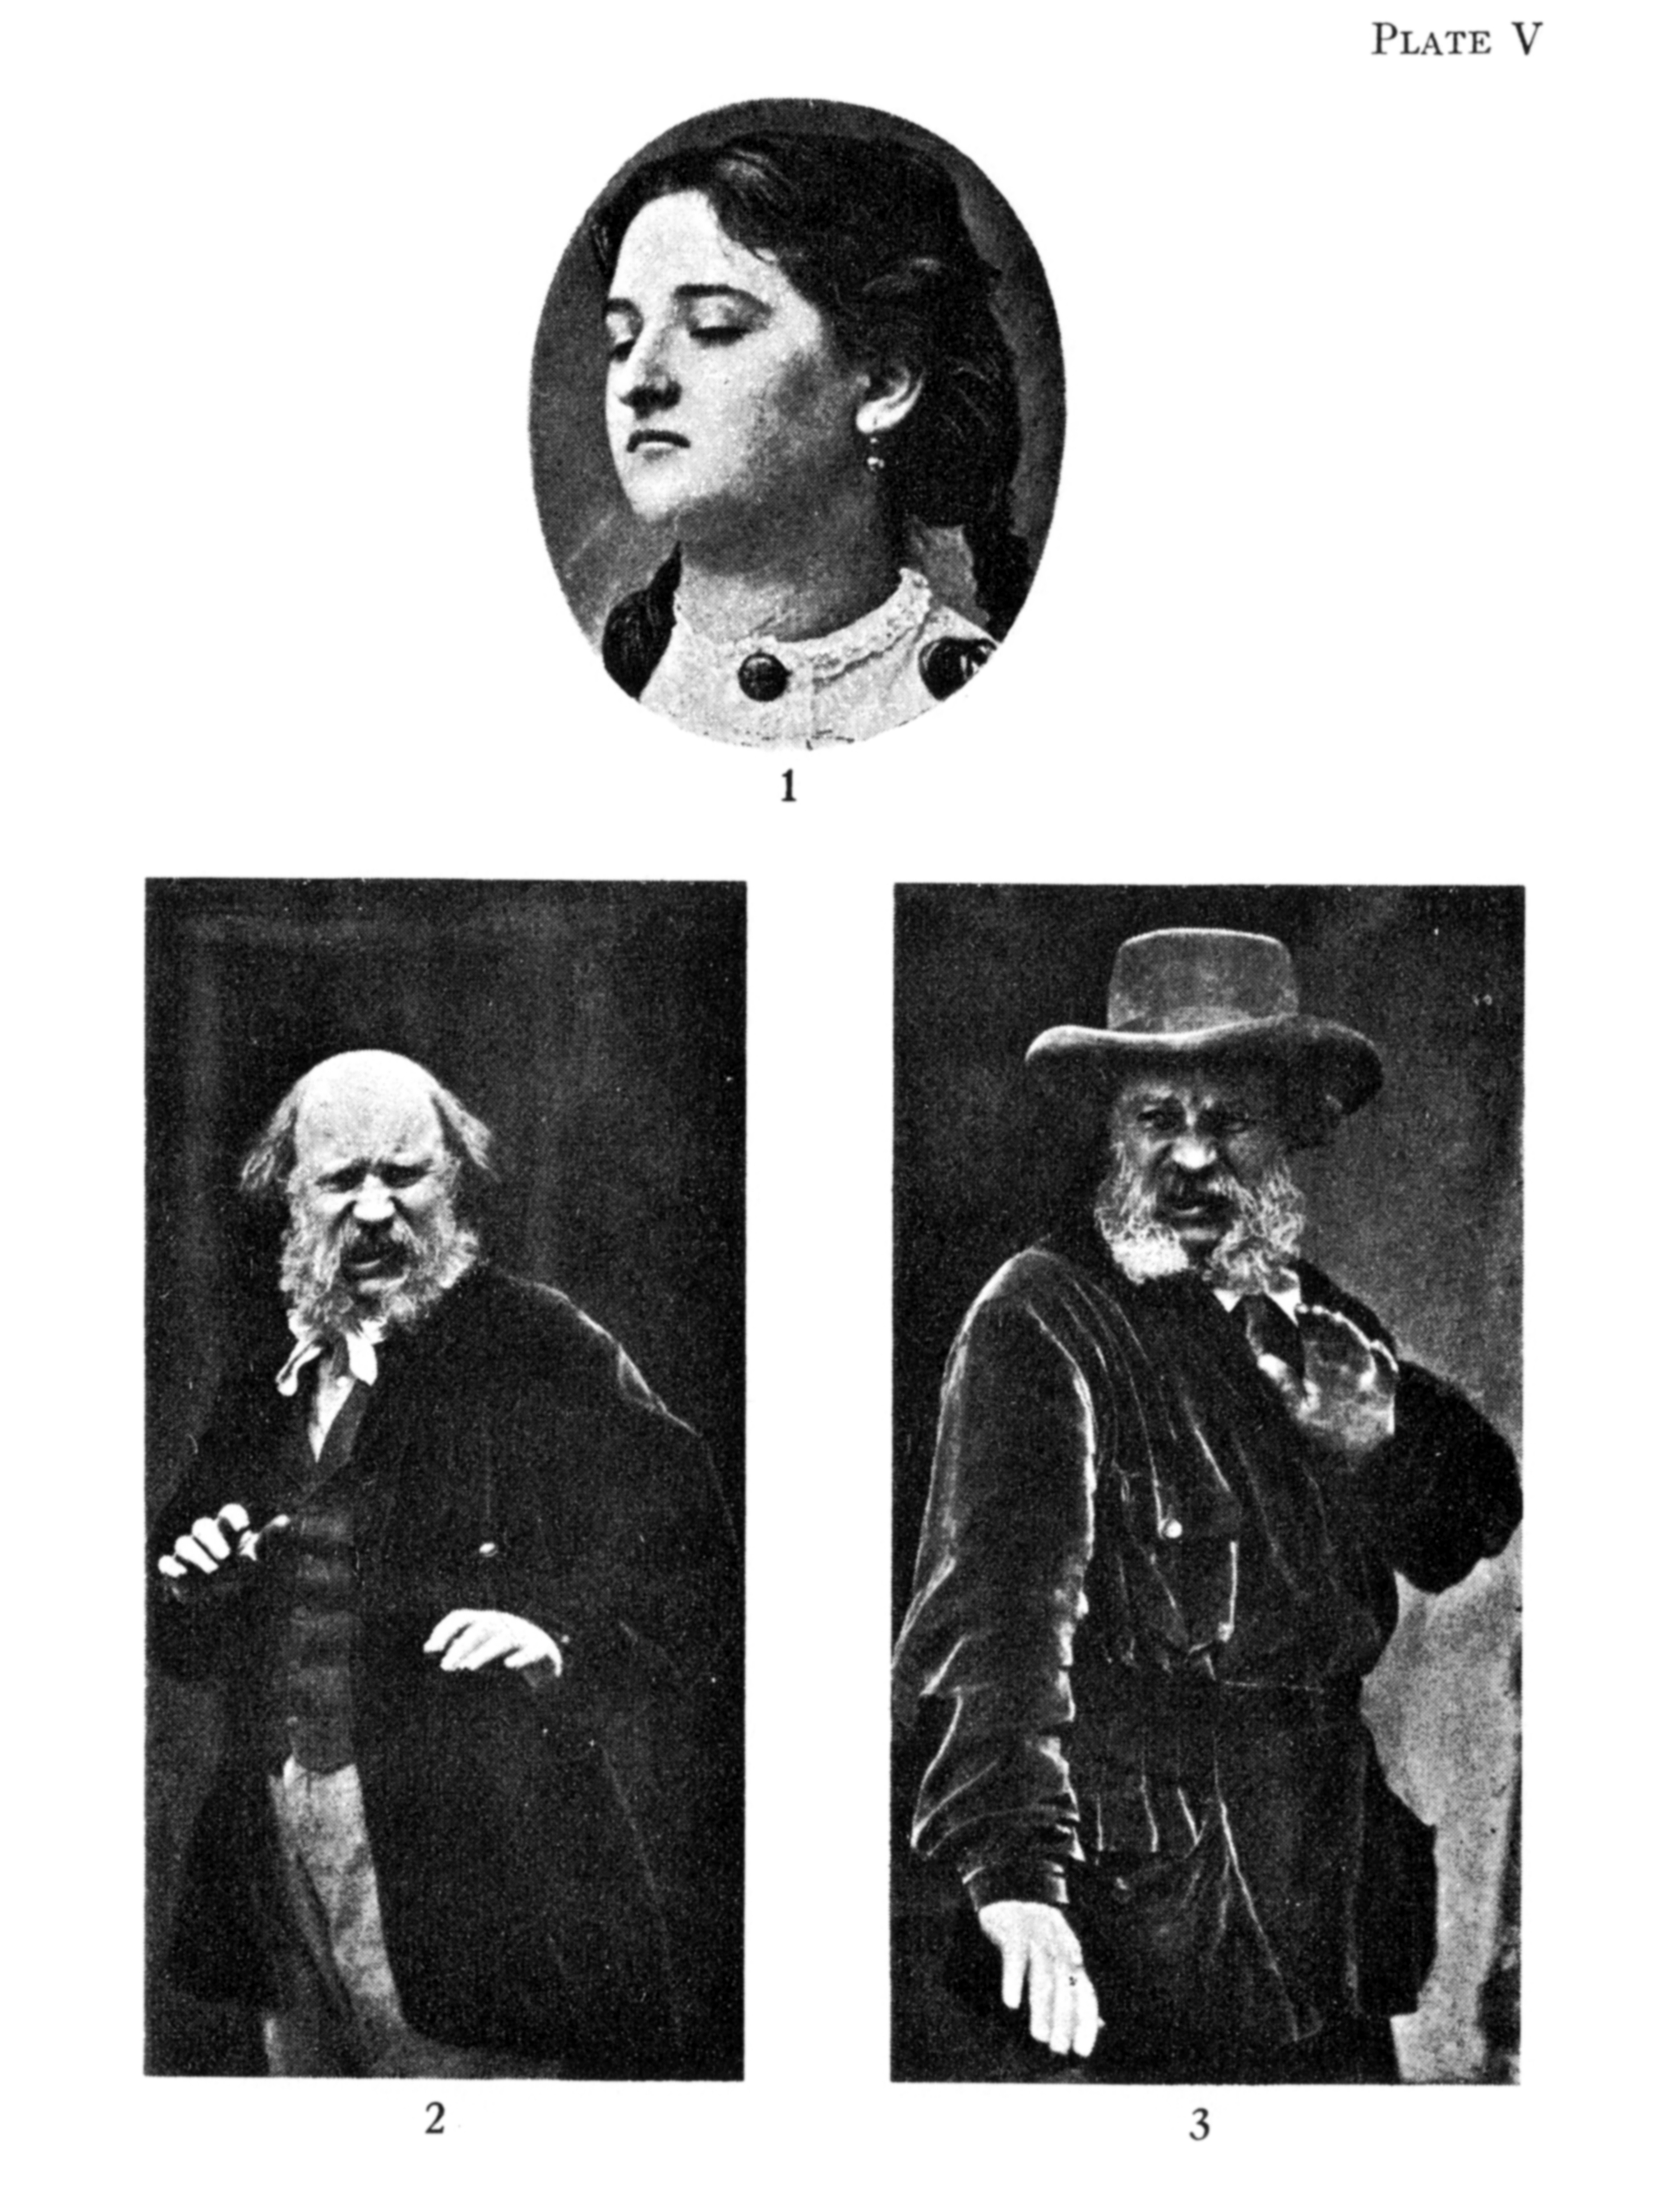 http://upload.wikimedia.org/wikipedia/commons/4/4f/Expression_of_the_Emotions_Plate_V.jpg